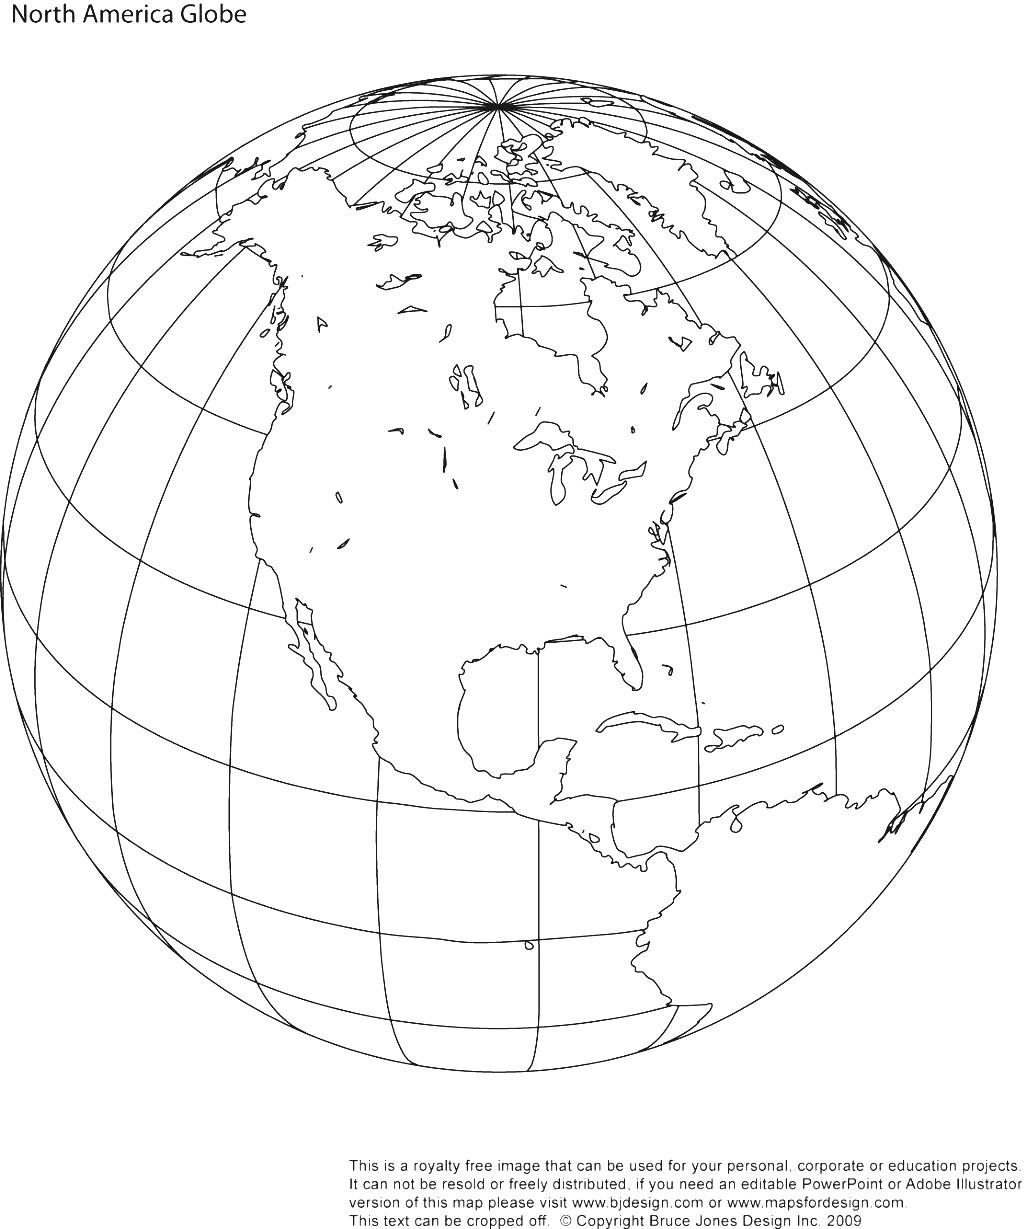 Continents map clipart to glue on globe graphic royalty free library Continents map clipart to glue on globe - ClipartFest graphic royalty free library